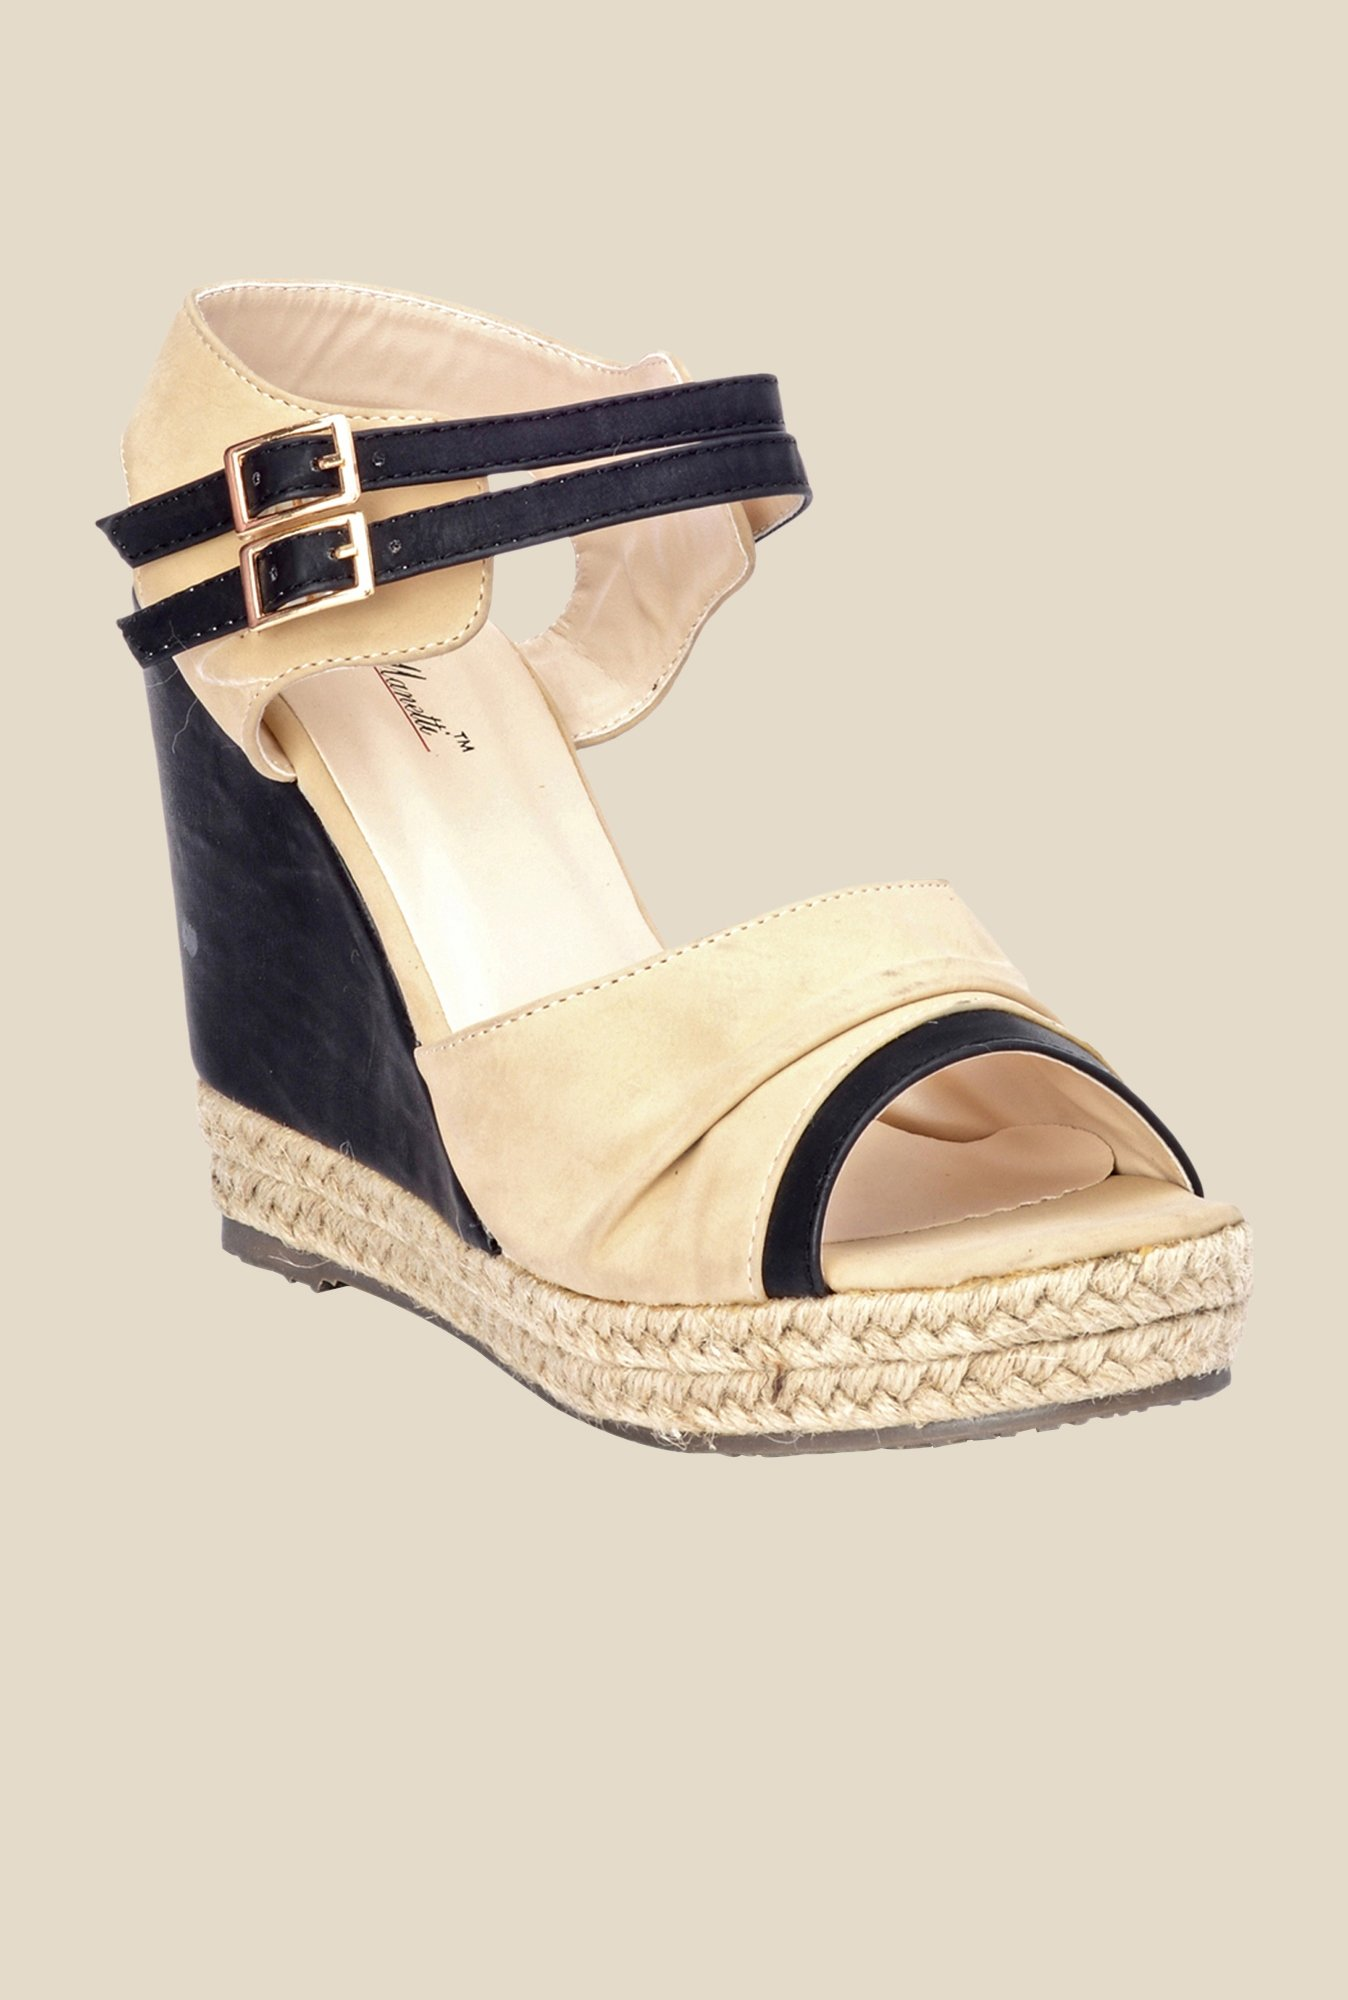 Bruno Manetti Beige & Black Ankle Strap Wedges